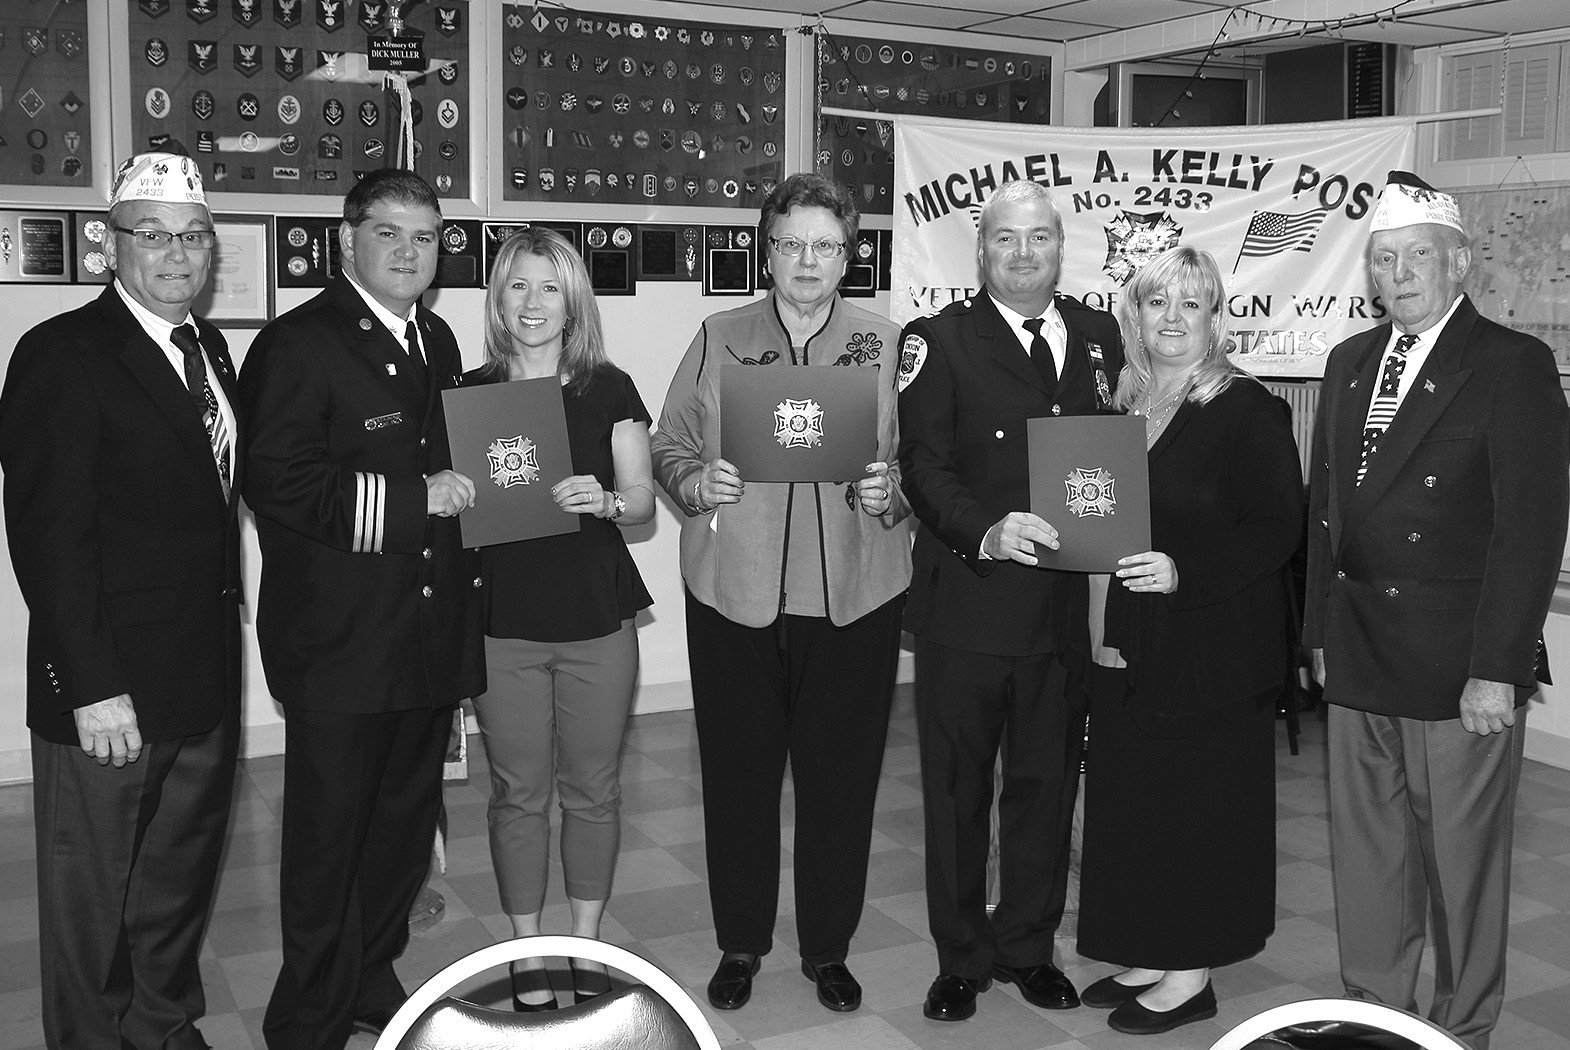 (above) On May 1, 2016, the Michael A. Kelly Post 2433, Veterans of Foreign Wars and its Ladies Auxiliary honored three township people. Sally Straus, Fire Battalion Chief Michael Scanio, and Police Captain David Tims.